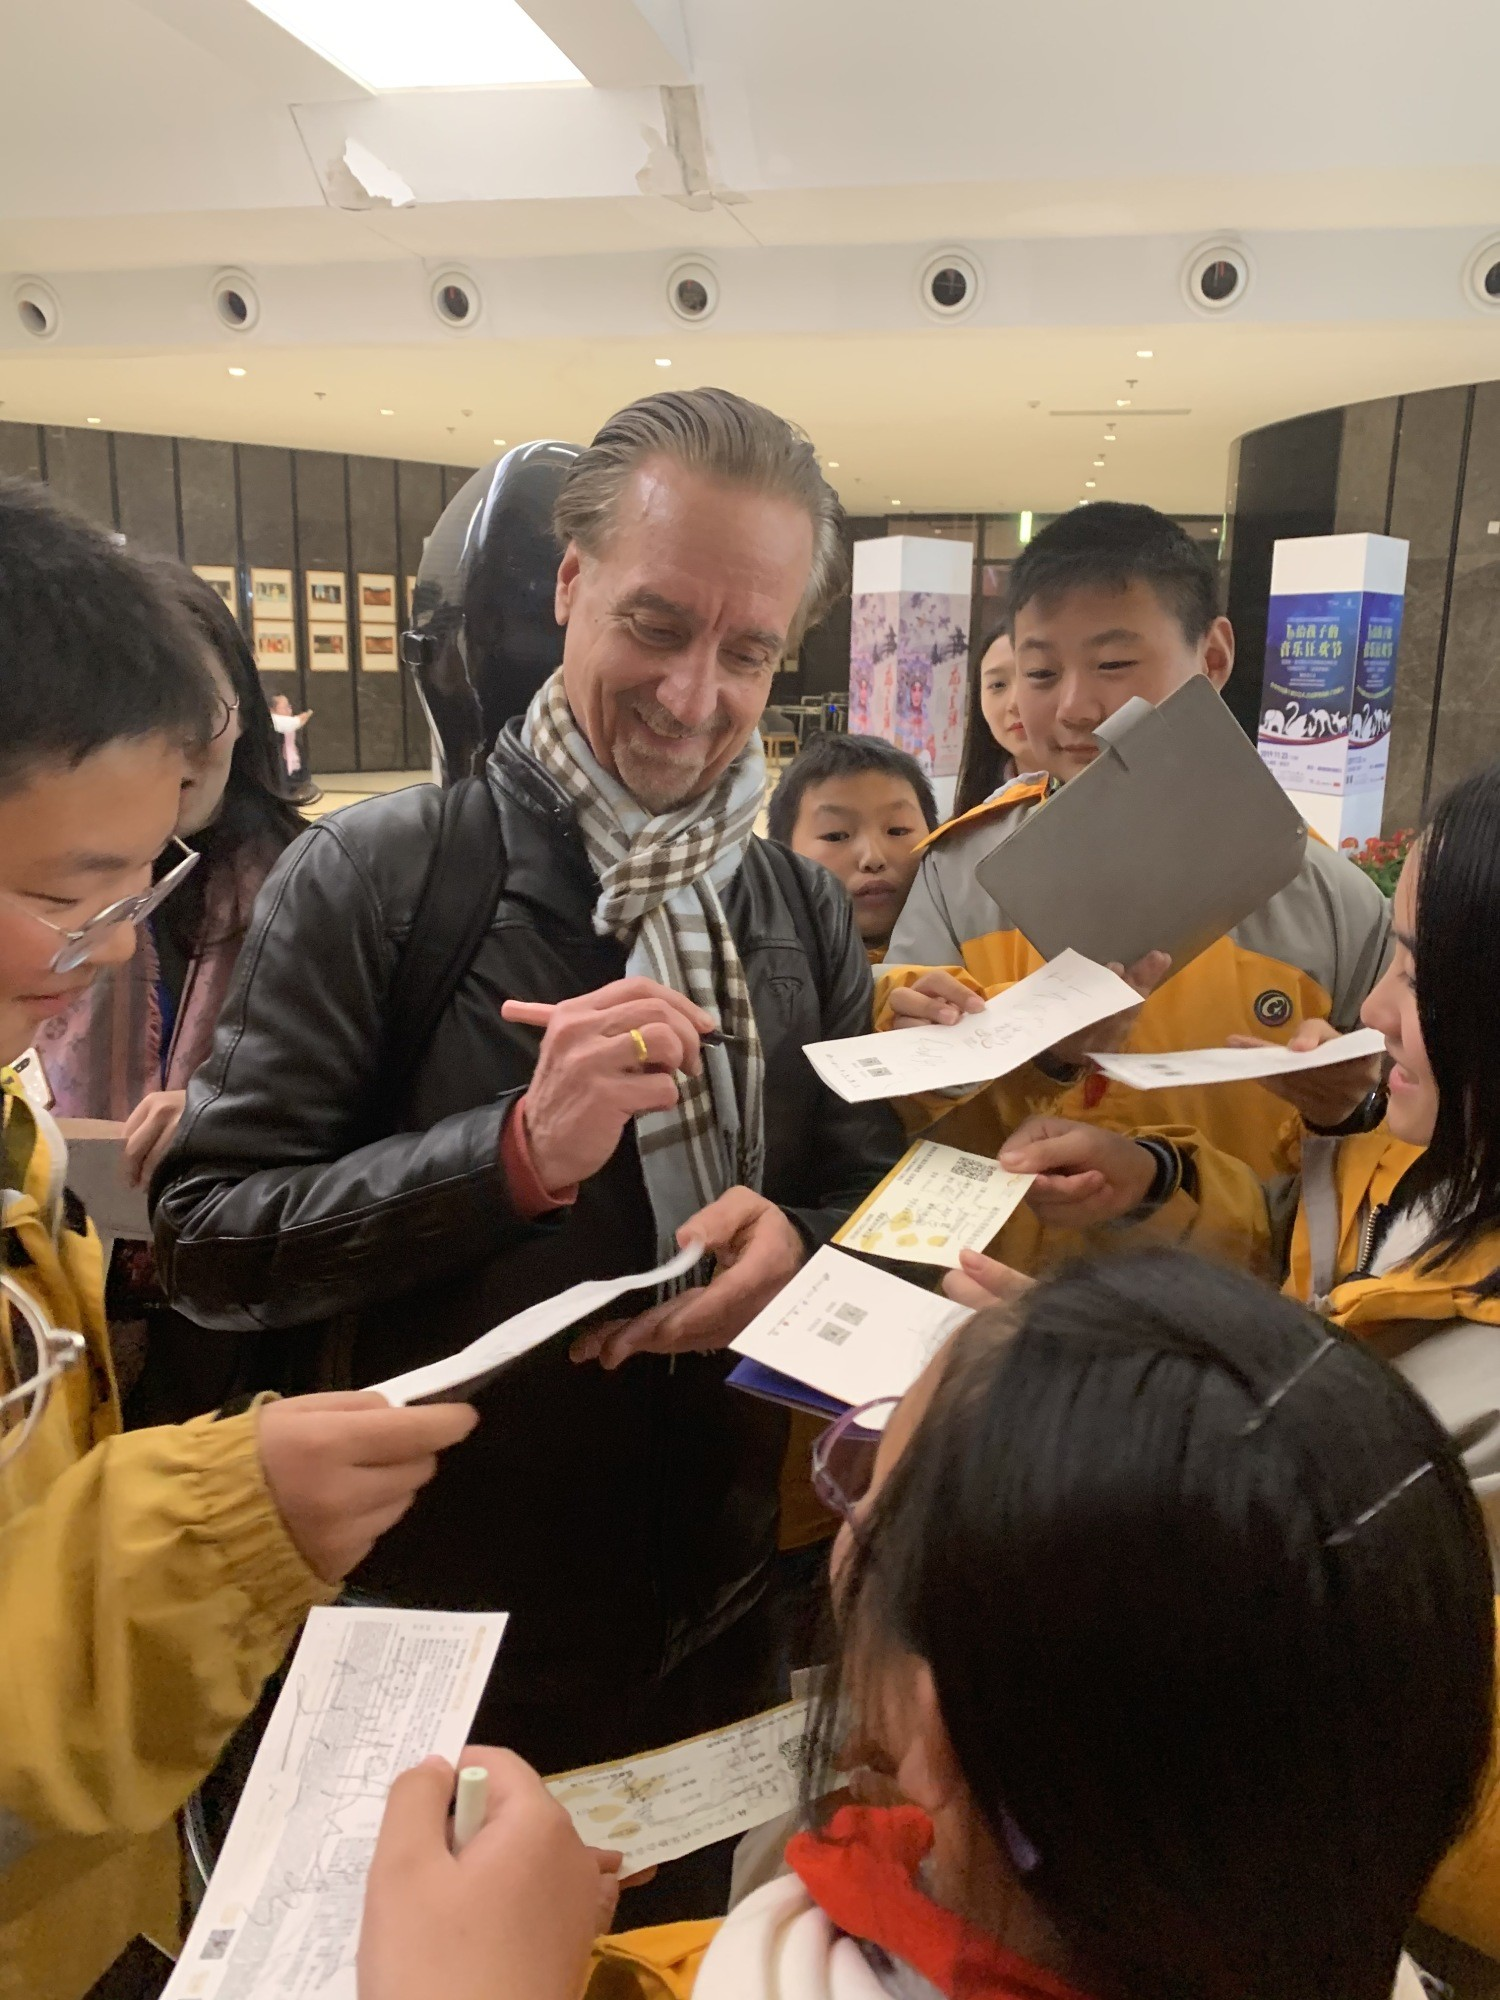 Cellist David Finckel signs performances after a performance at Jiangsu Centre for the Performing Arts.